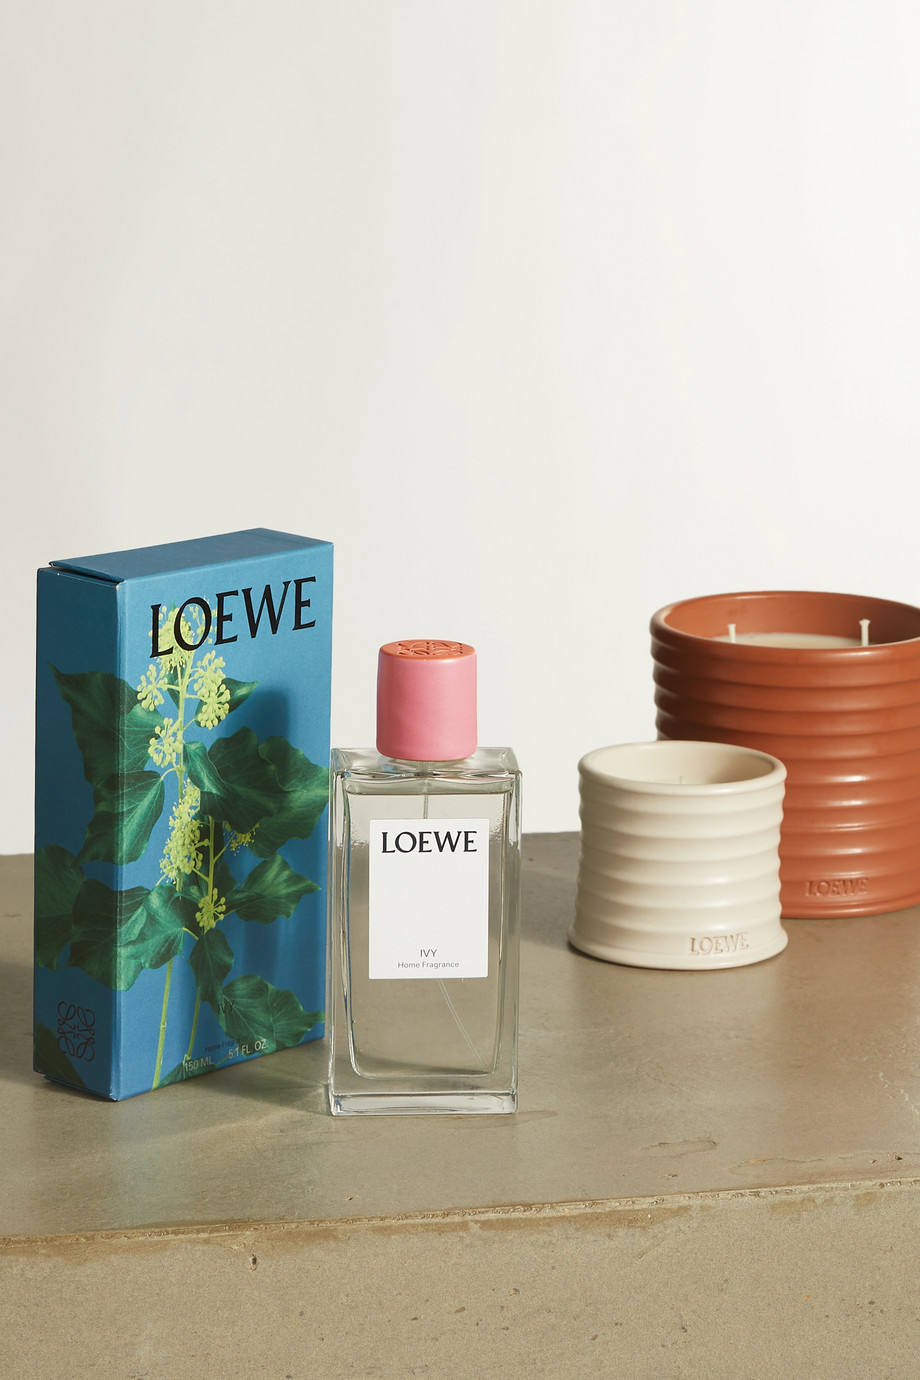 LOEWE Home Scents Room Spray - Ivy, 150ml